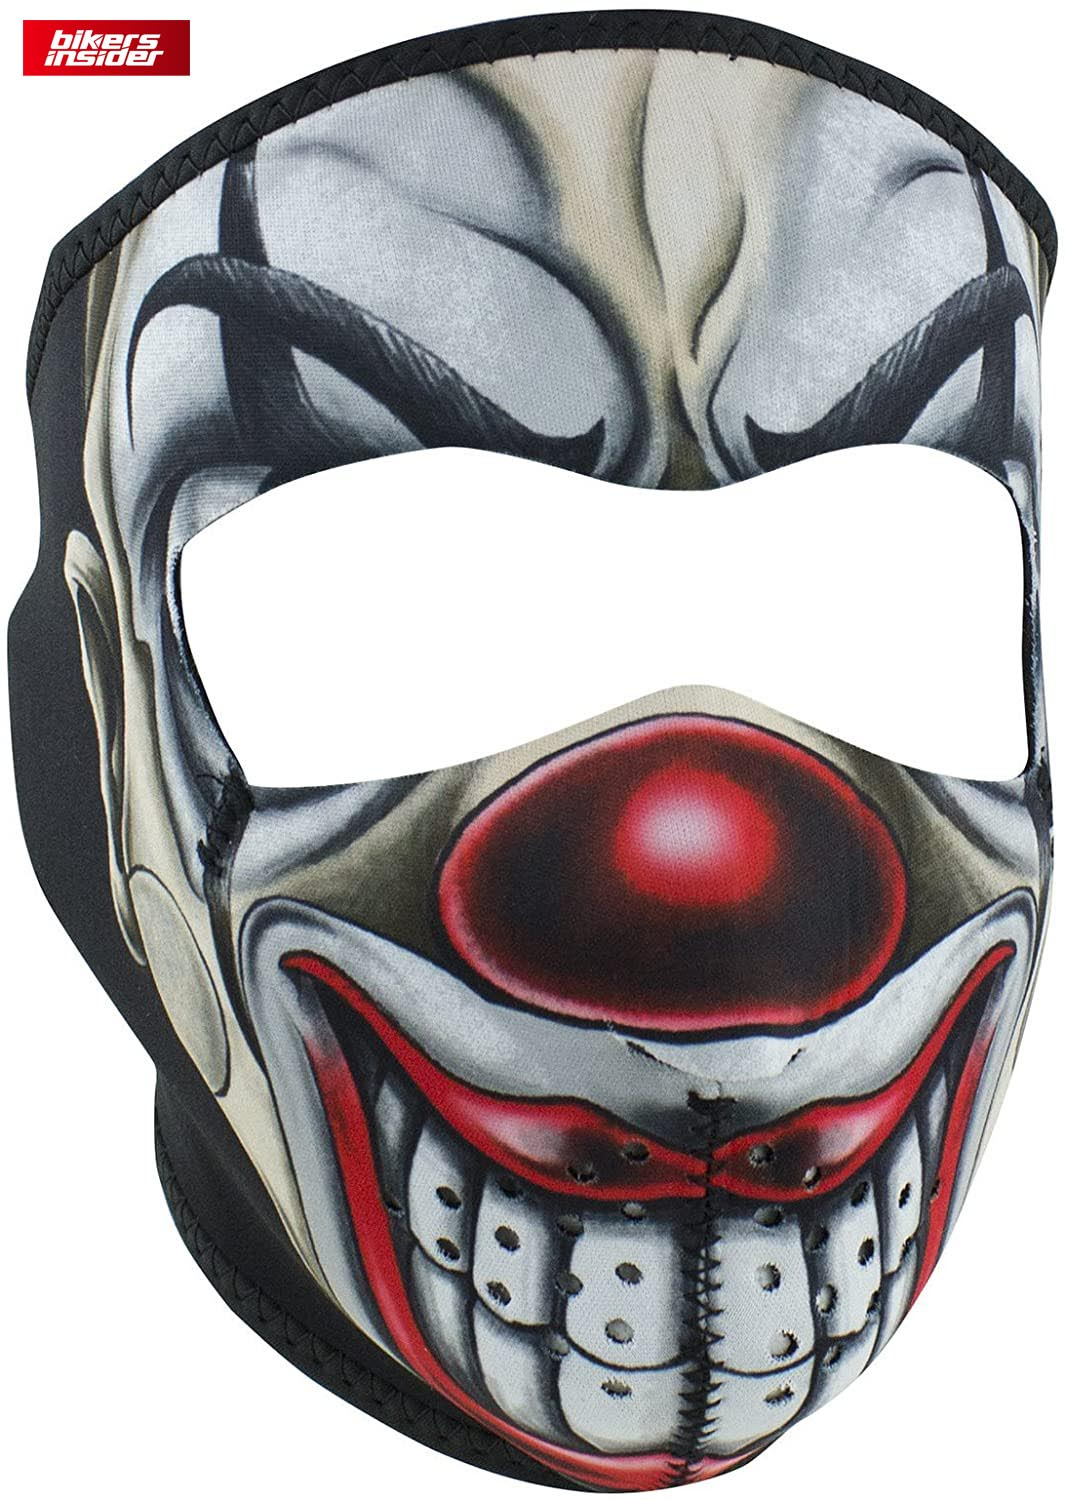 clown-face-mask-for-motorcycle-helmet